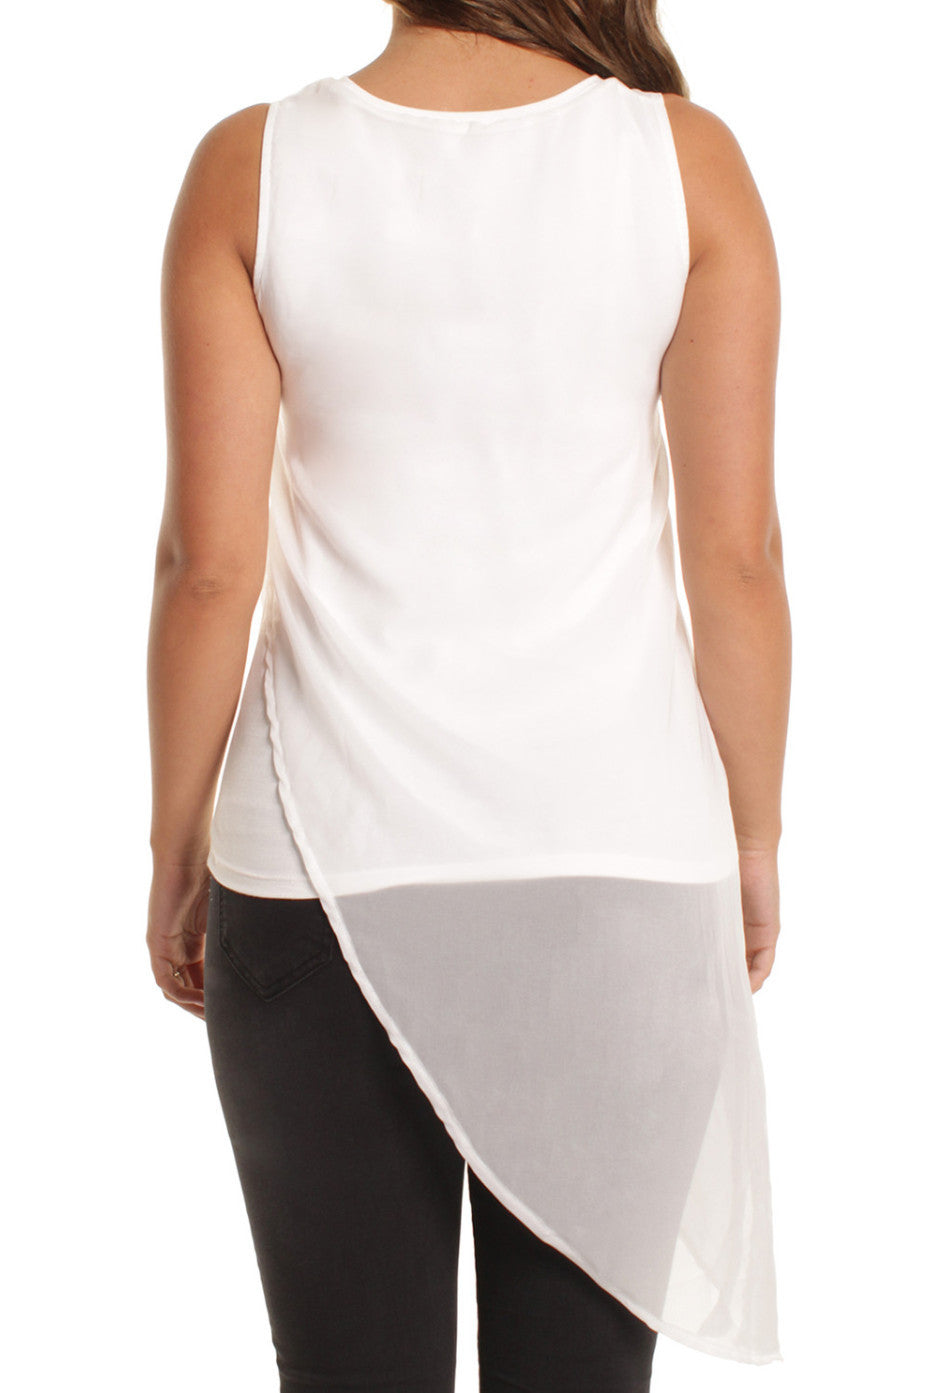 White Asymmetric Design Sleeveless Vest